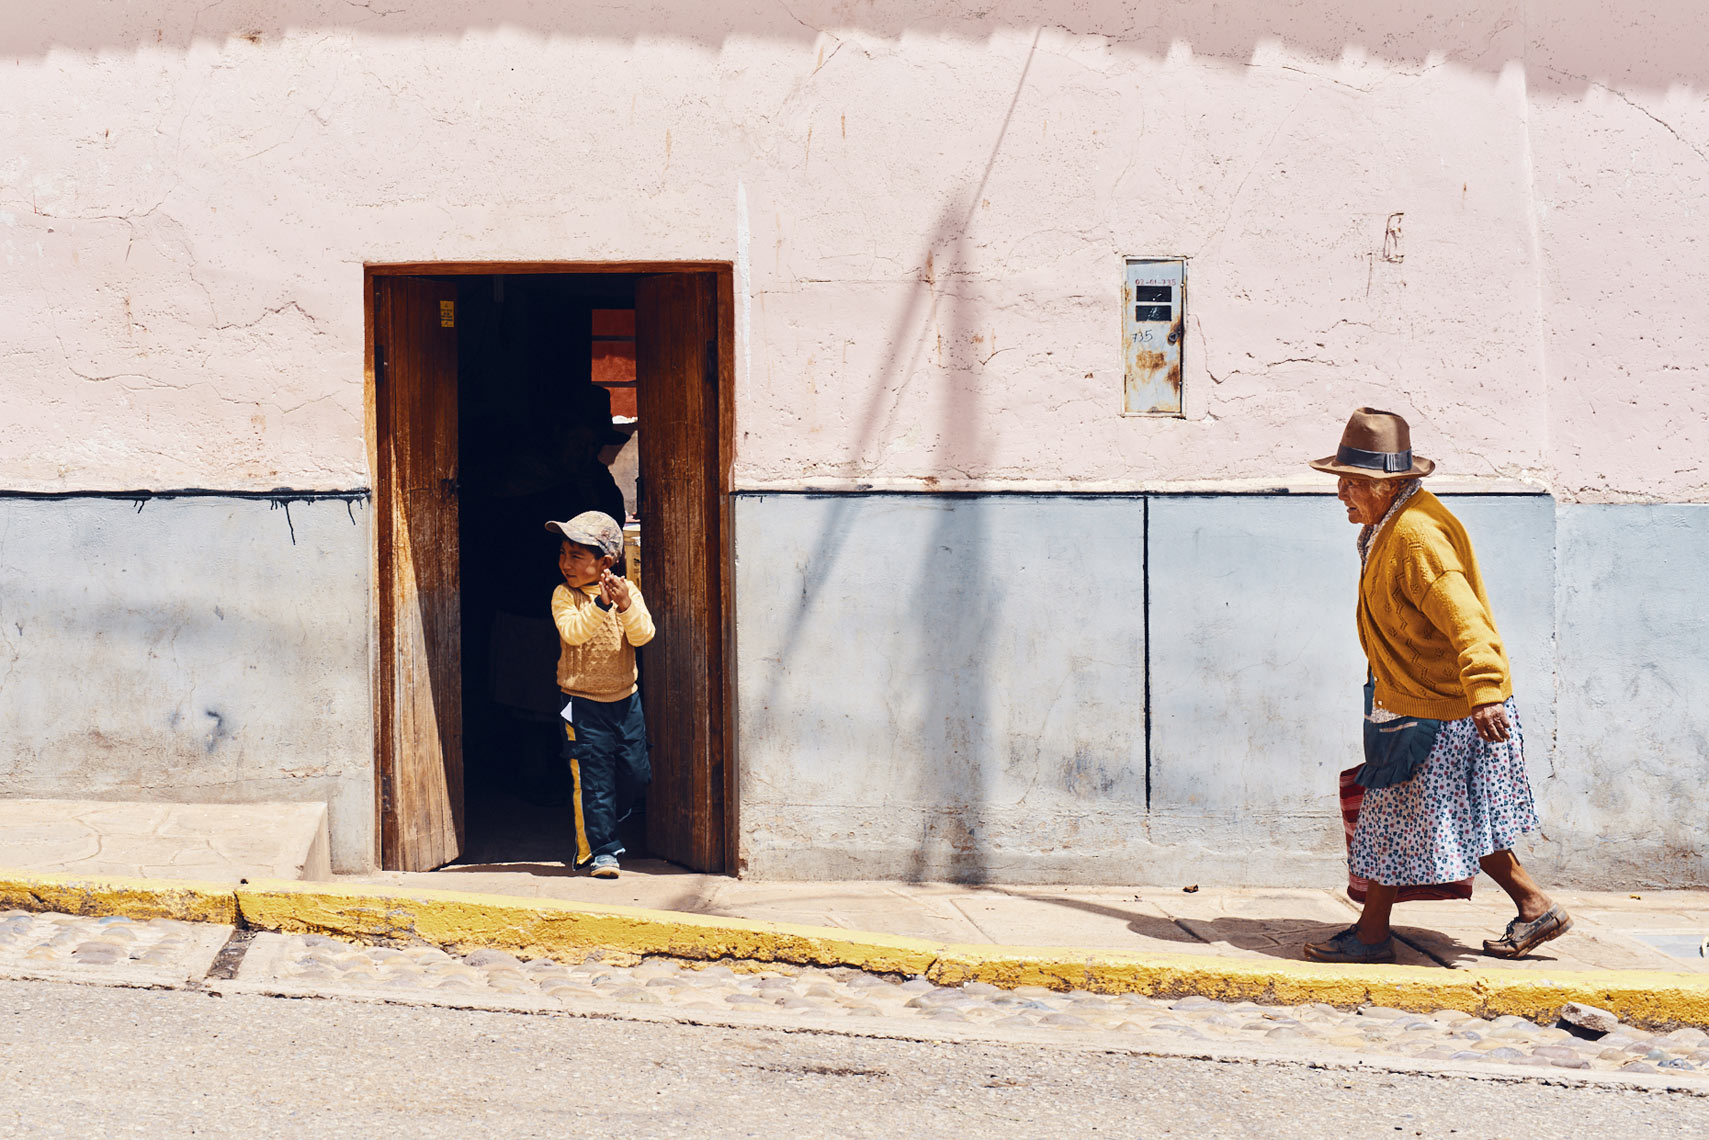 Elderly-Peruvian-woman-in-tall-hat-walking-on-sidewalk-with-young-boy-in-doorway